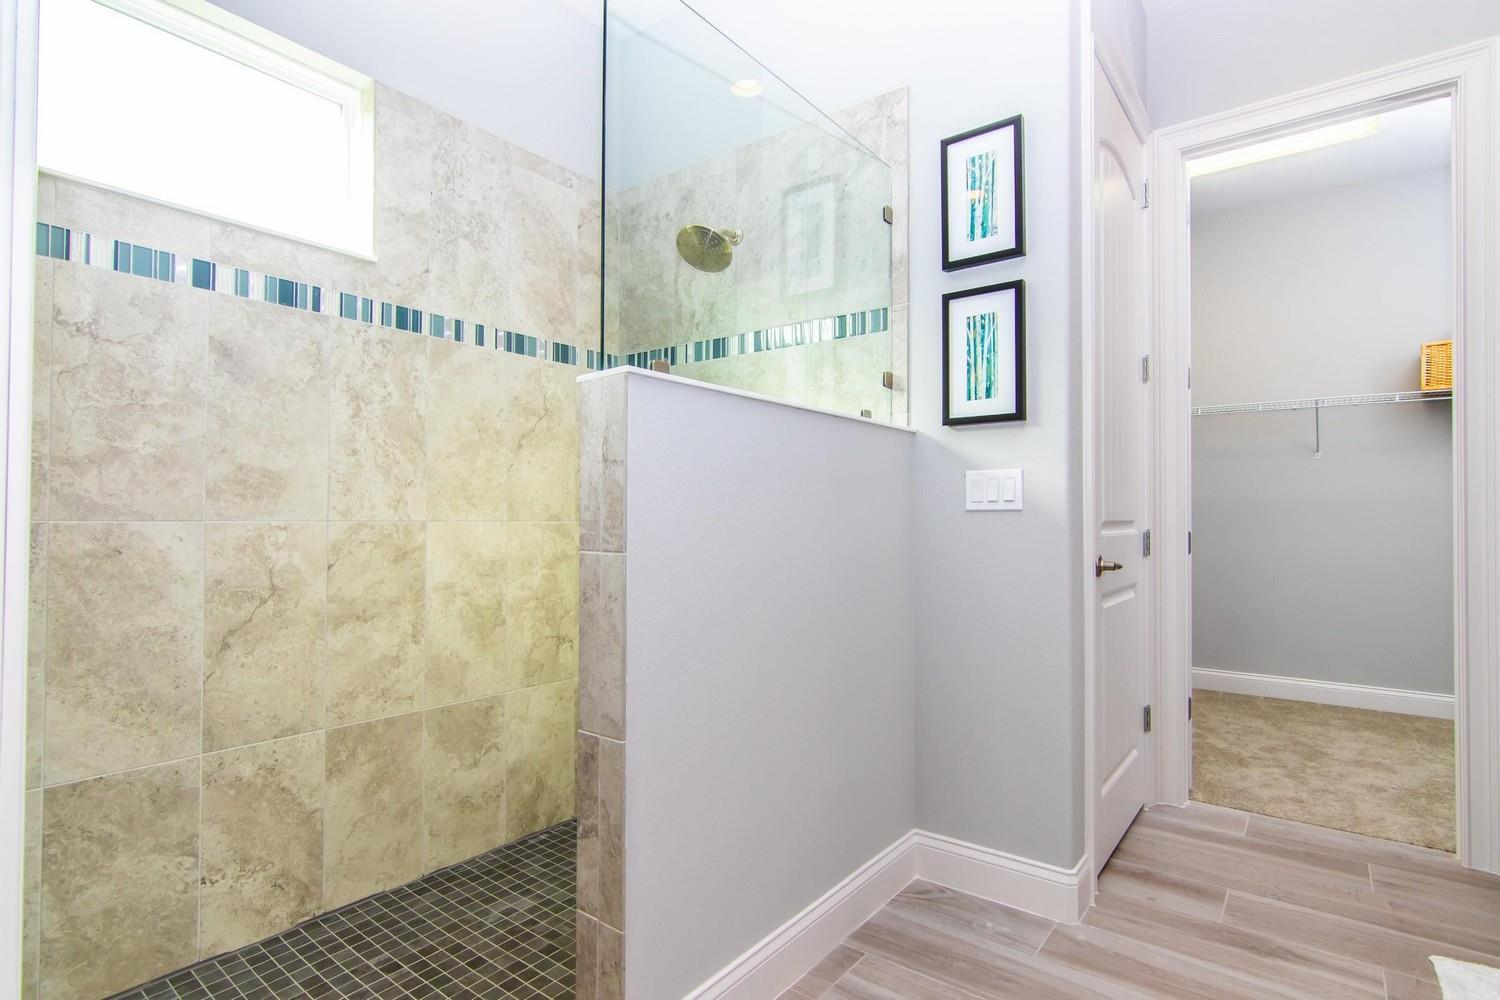 Bathroom featured in The Floridian By Adley in Daytona Beach, FL